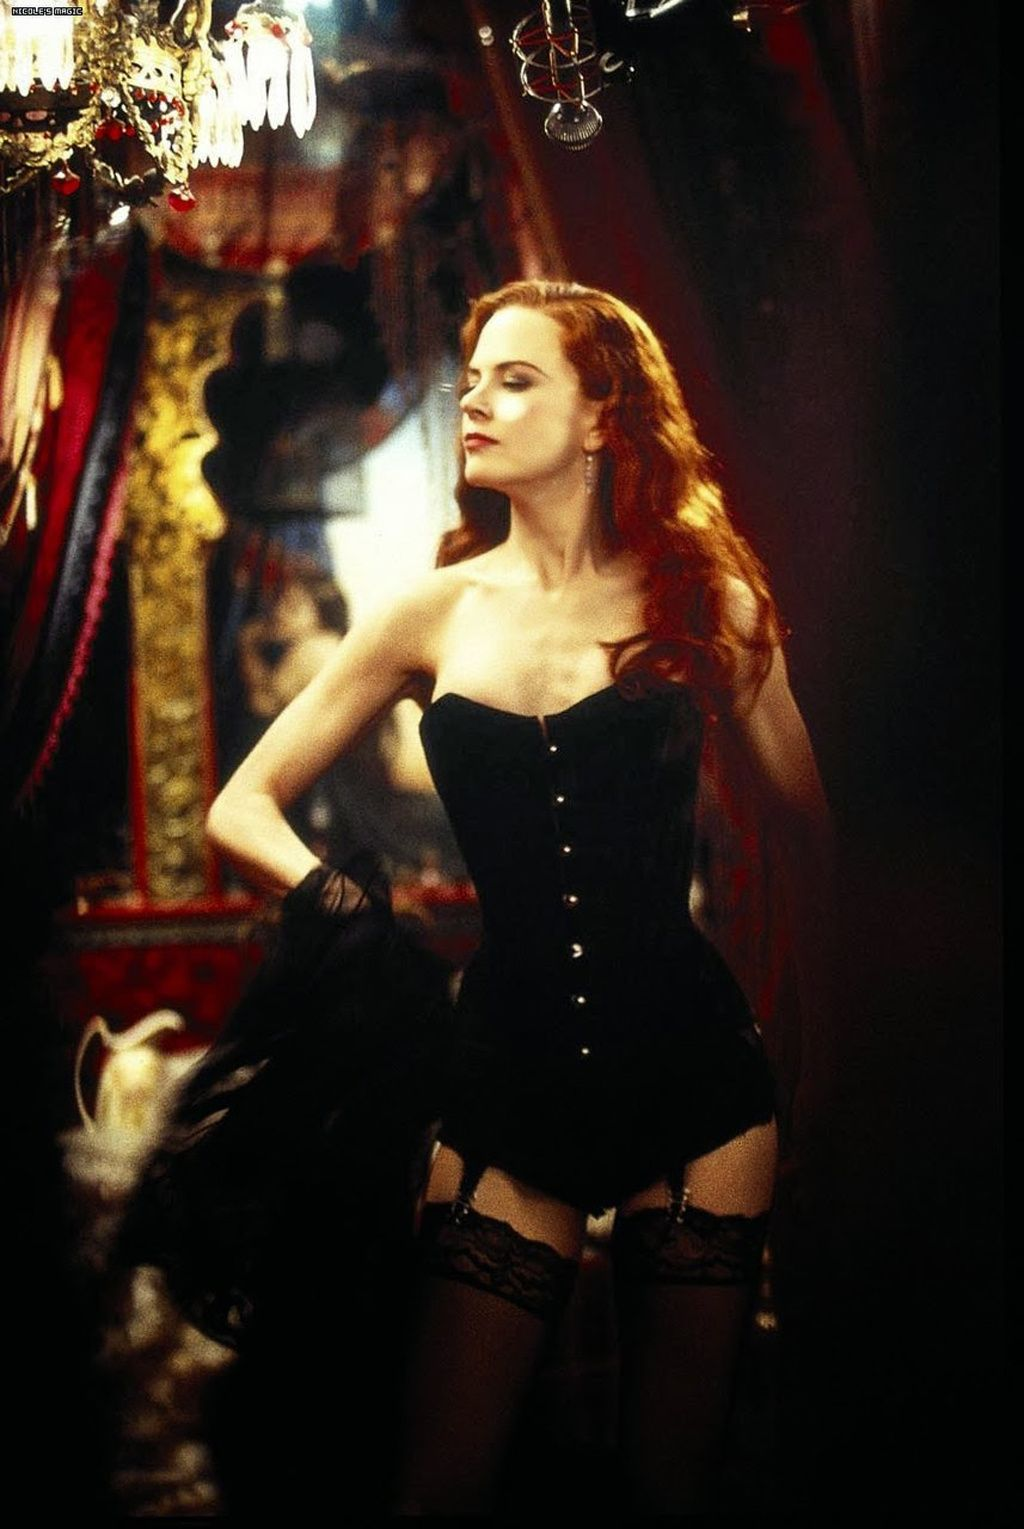 Alerte Rousse Moulin rouge, Costume moulin rouge, Le moulin